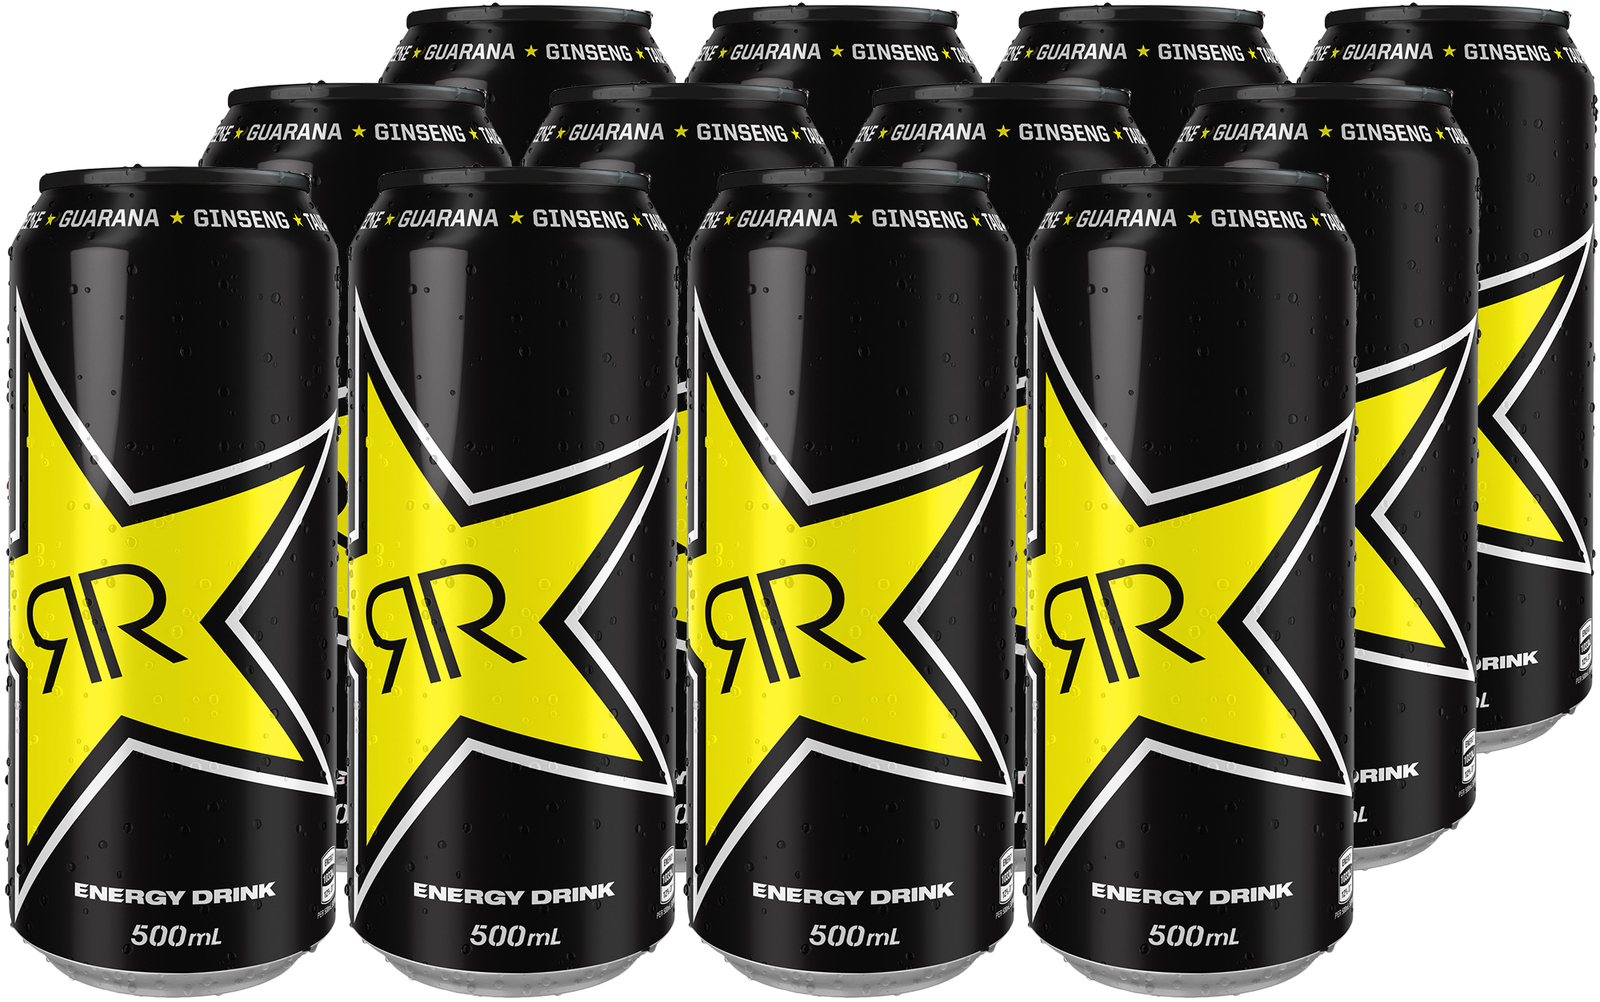 Rockstar Energy Drink (500ml) image